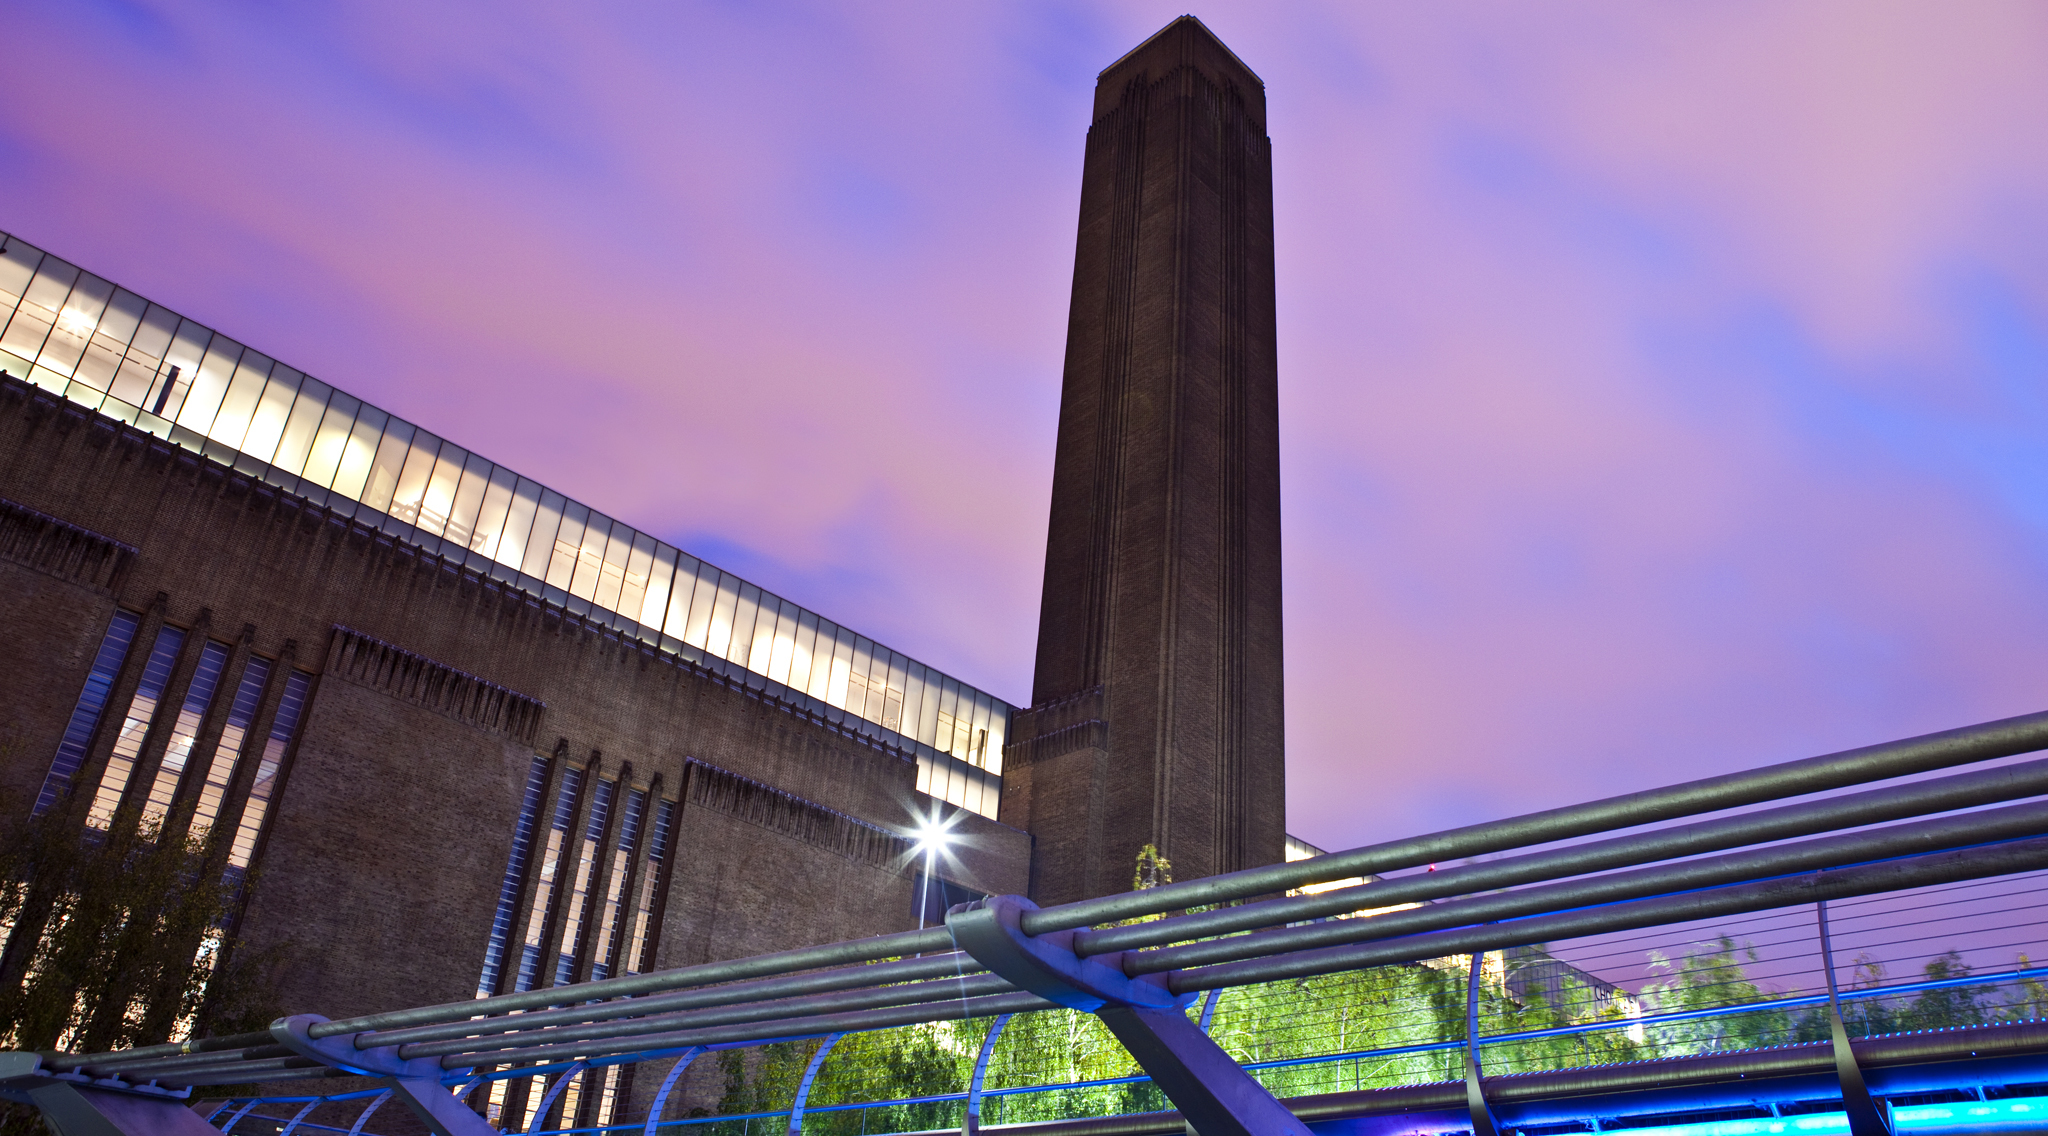 Best buildings in London: Tate Modern